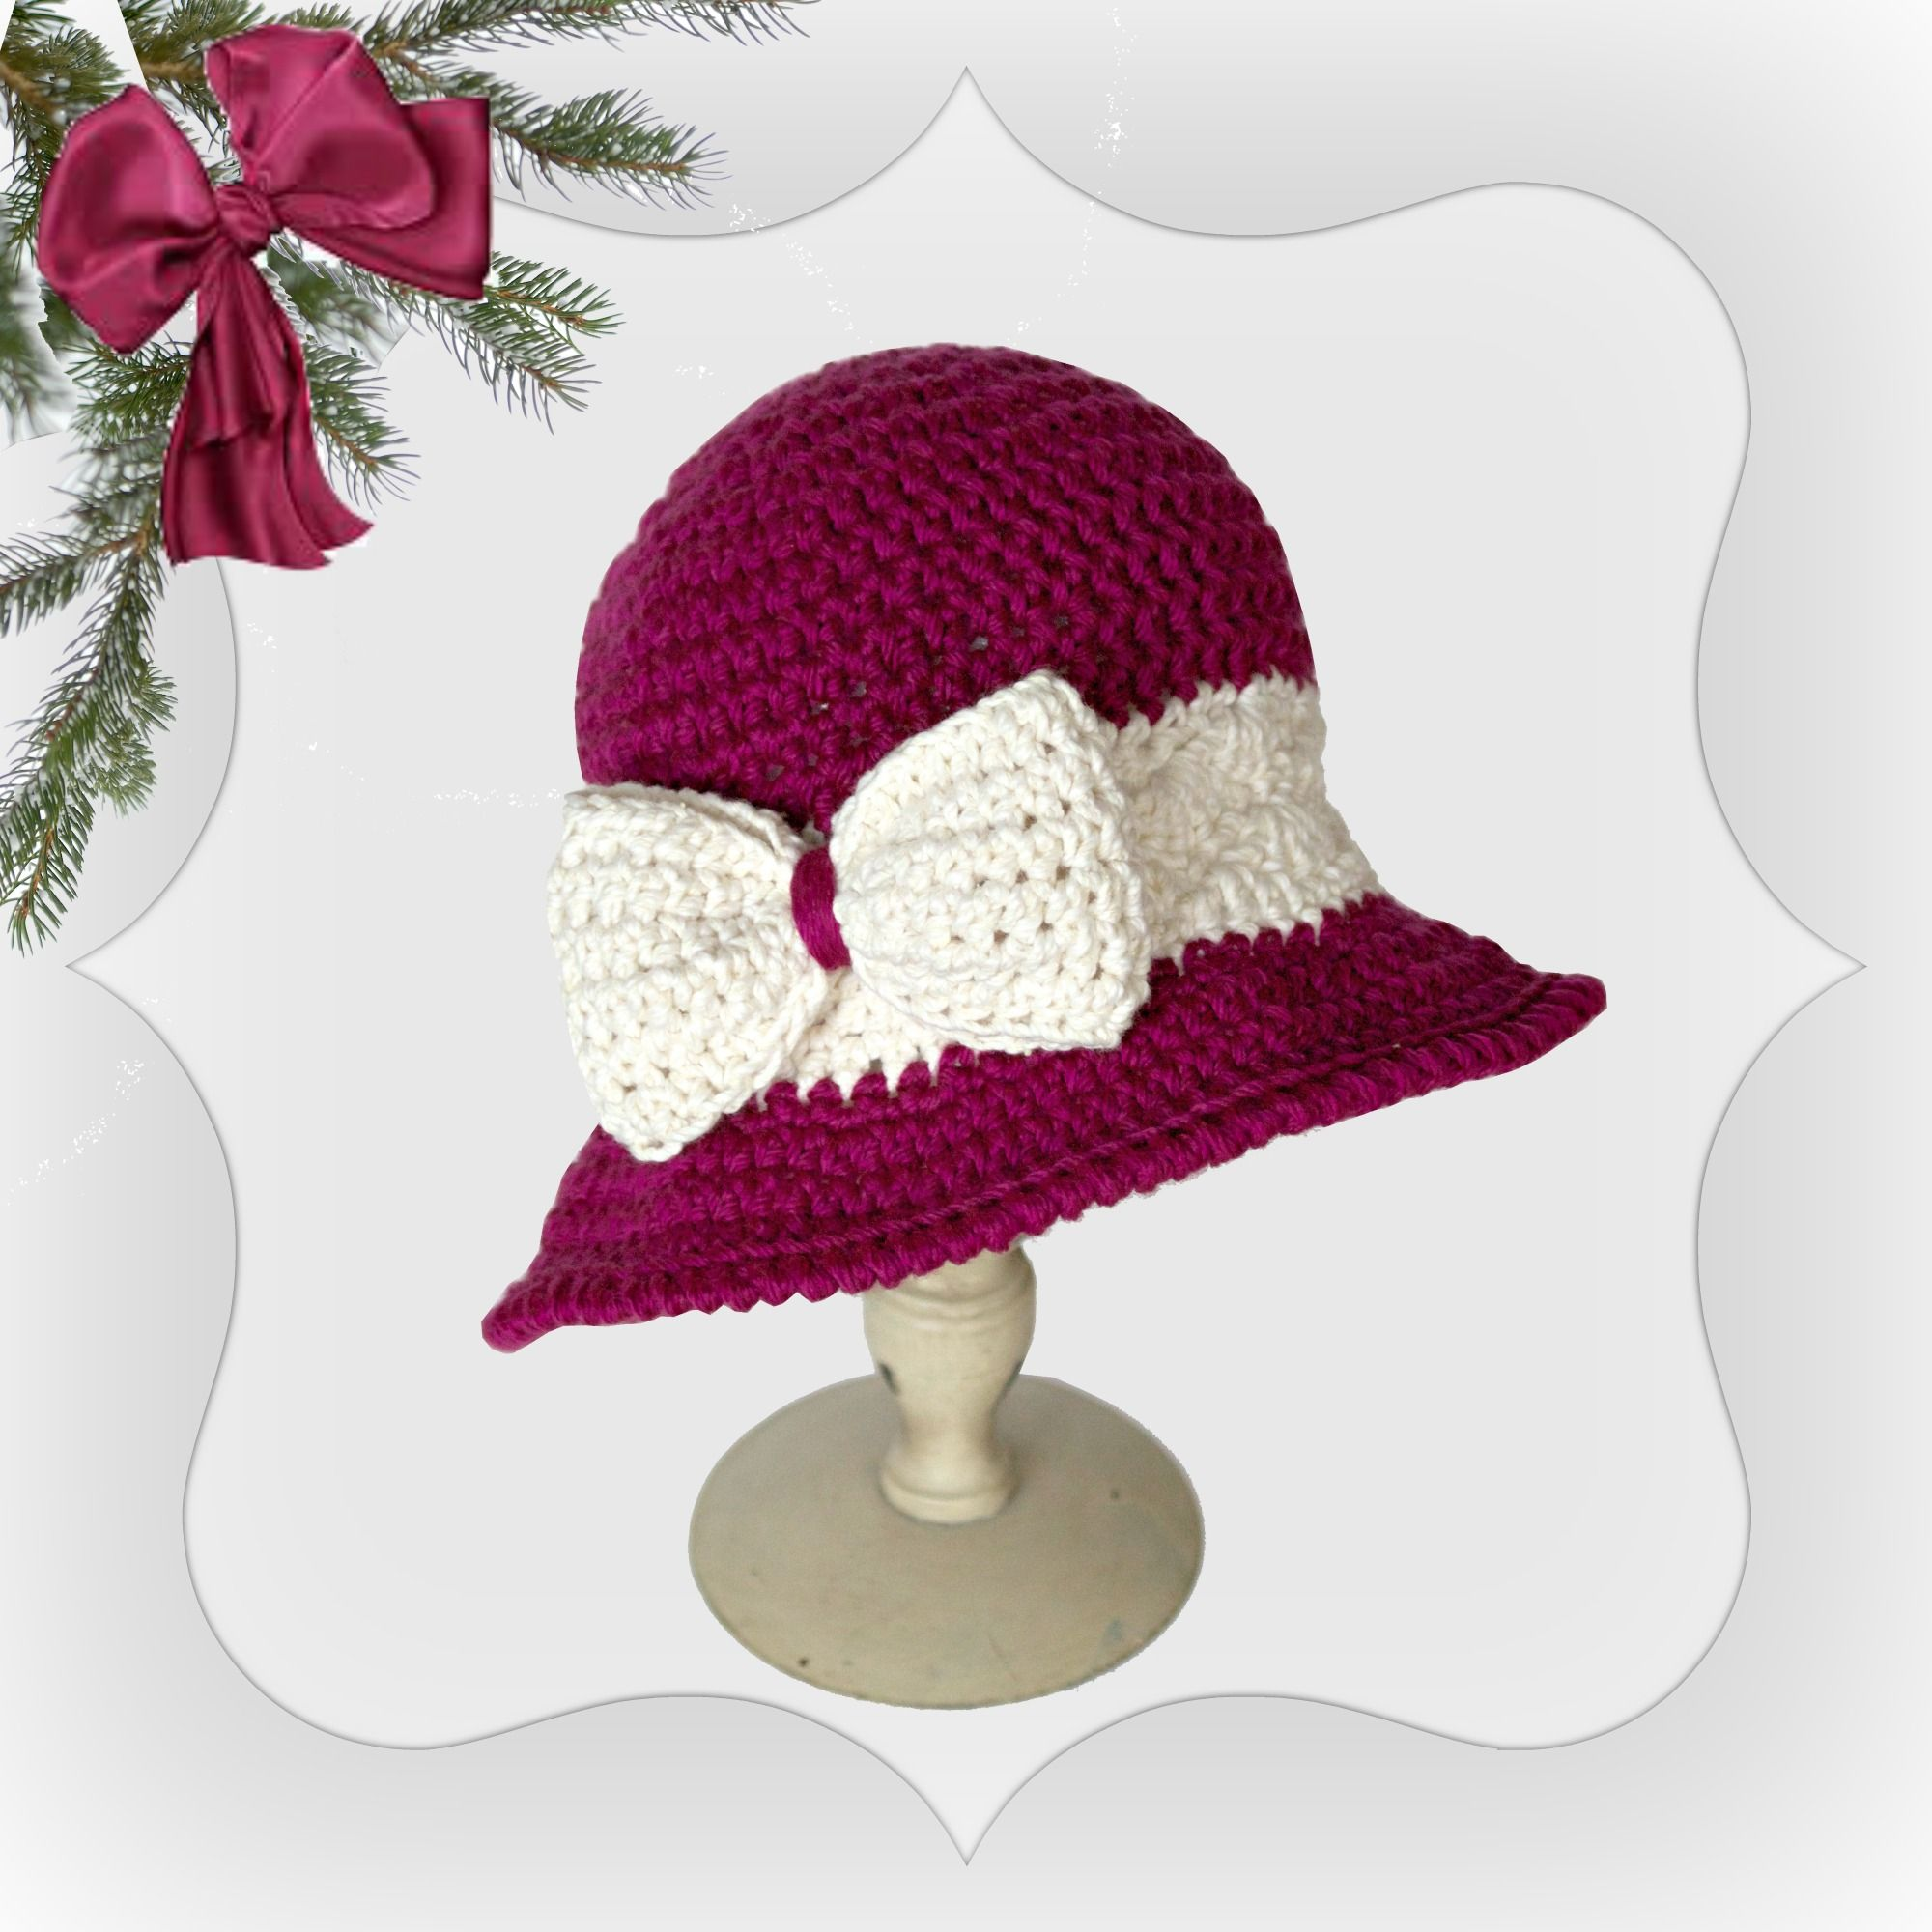 free crochet pattern for hat christmas joy | sonnenhut | Pinterest ...